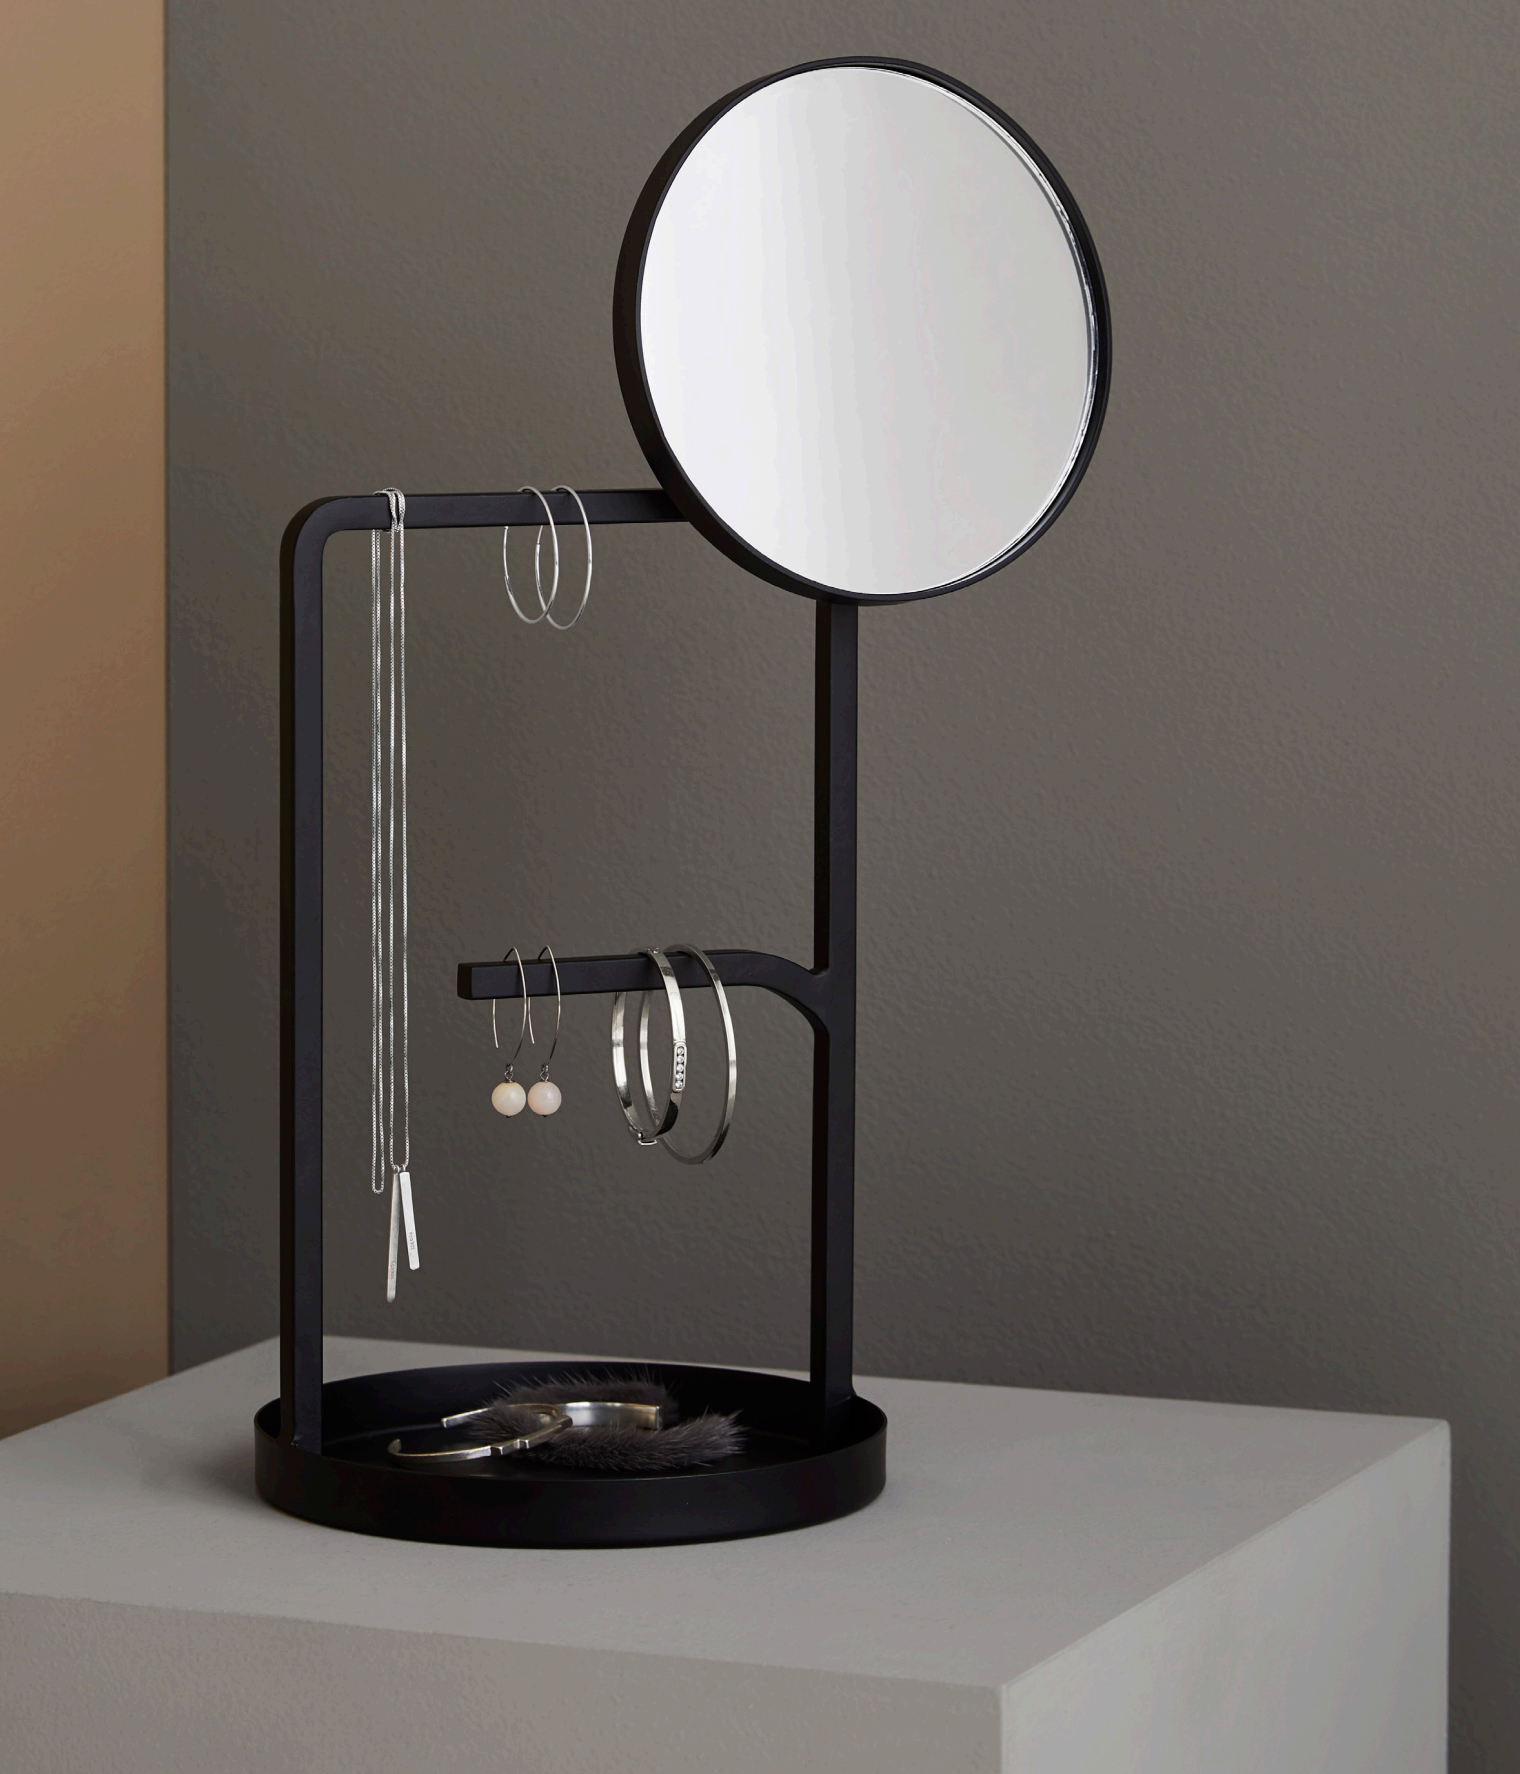 Woud Spiegel TABLE MIRROR